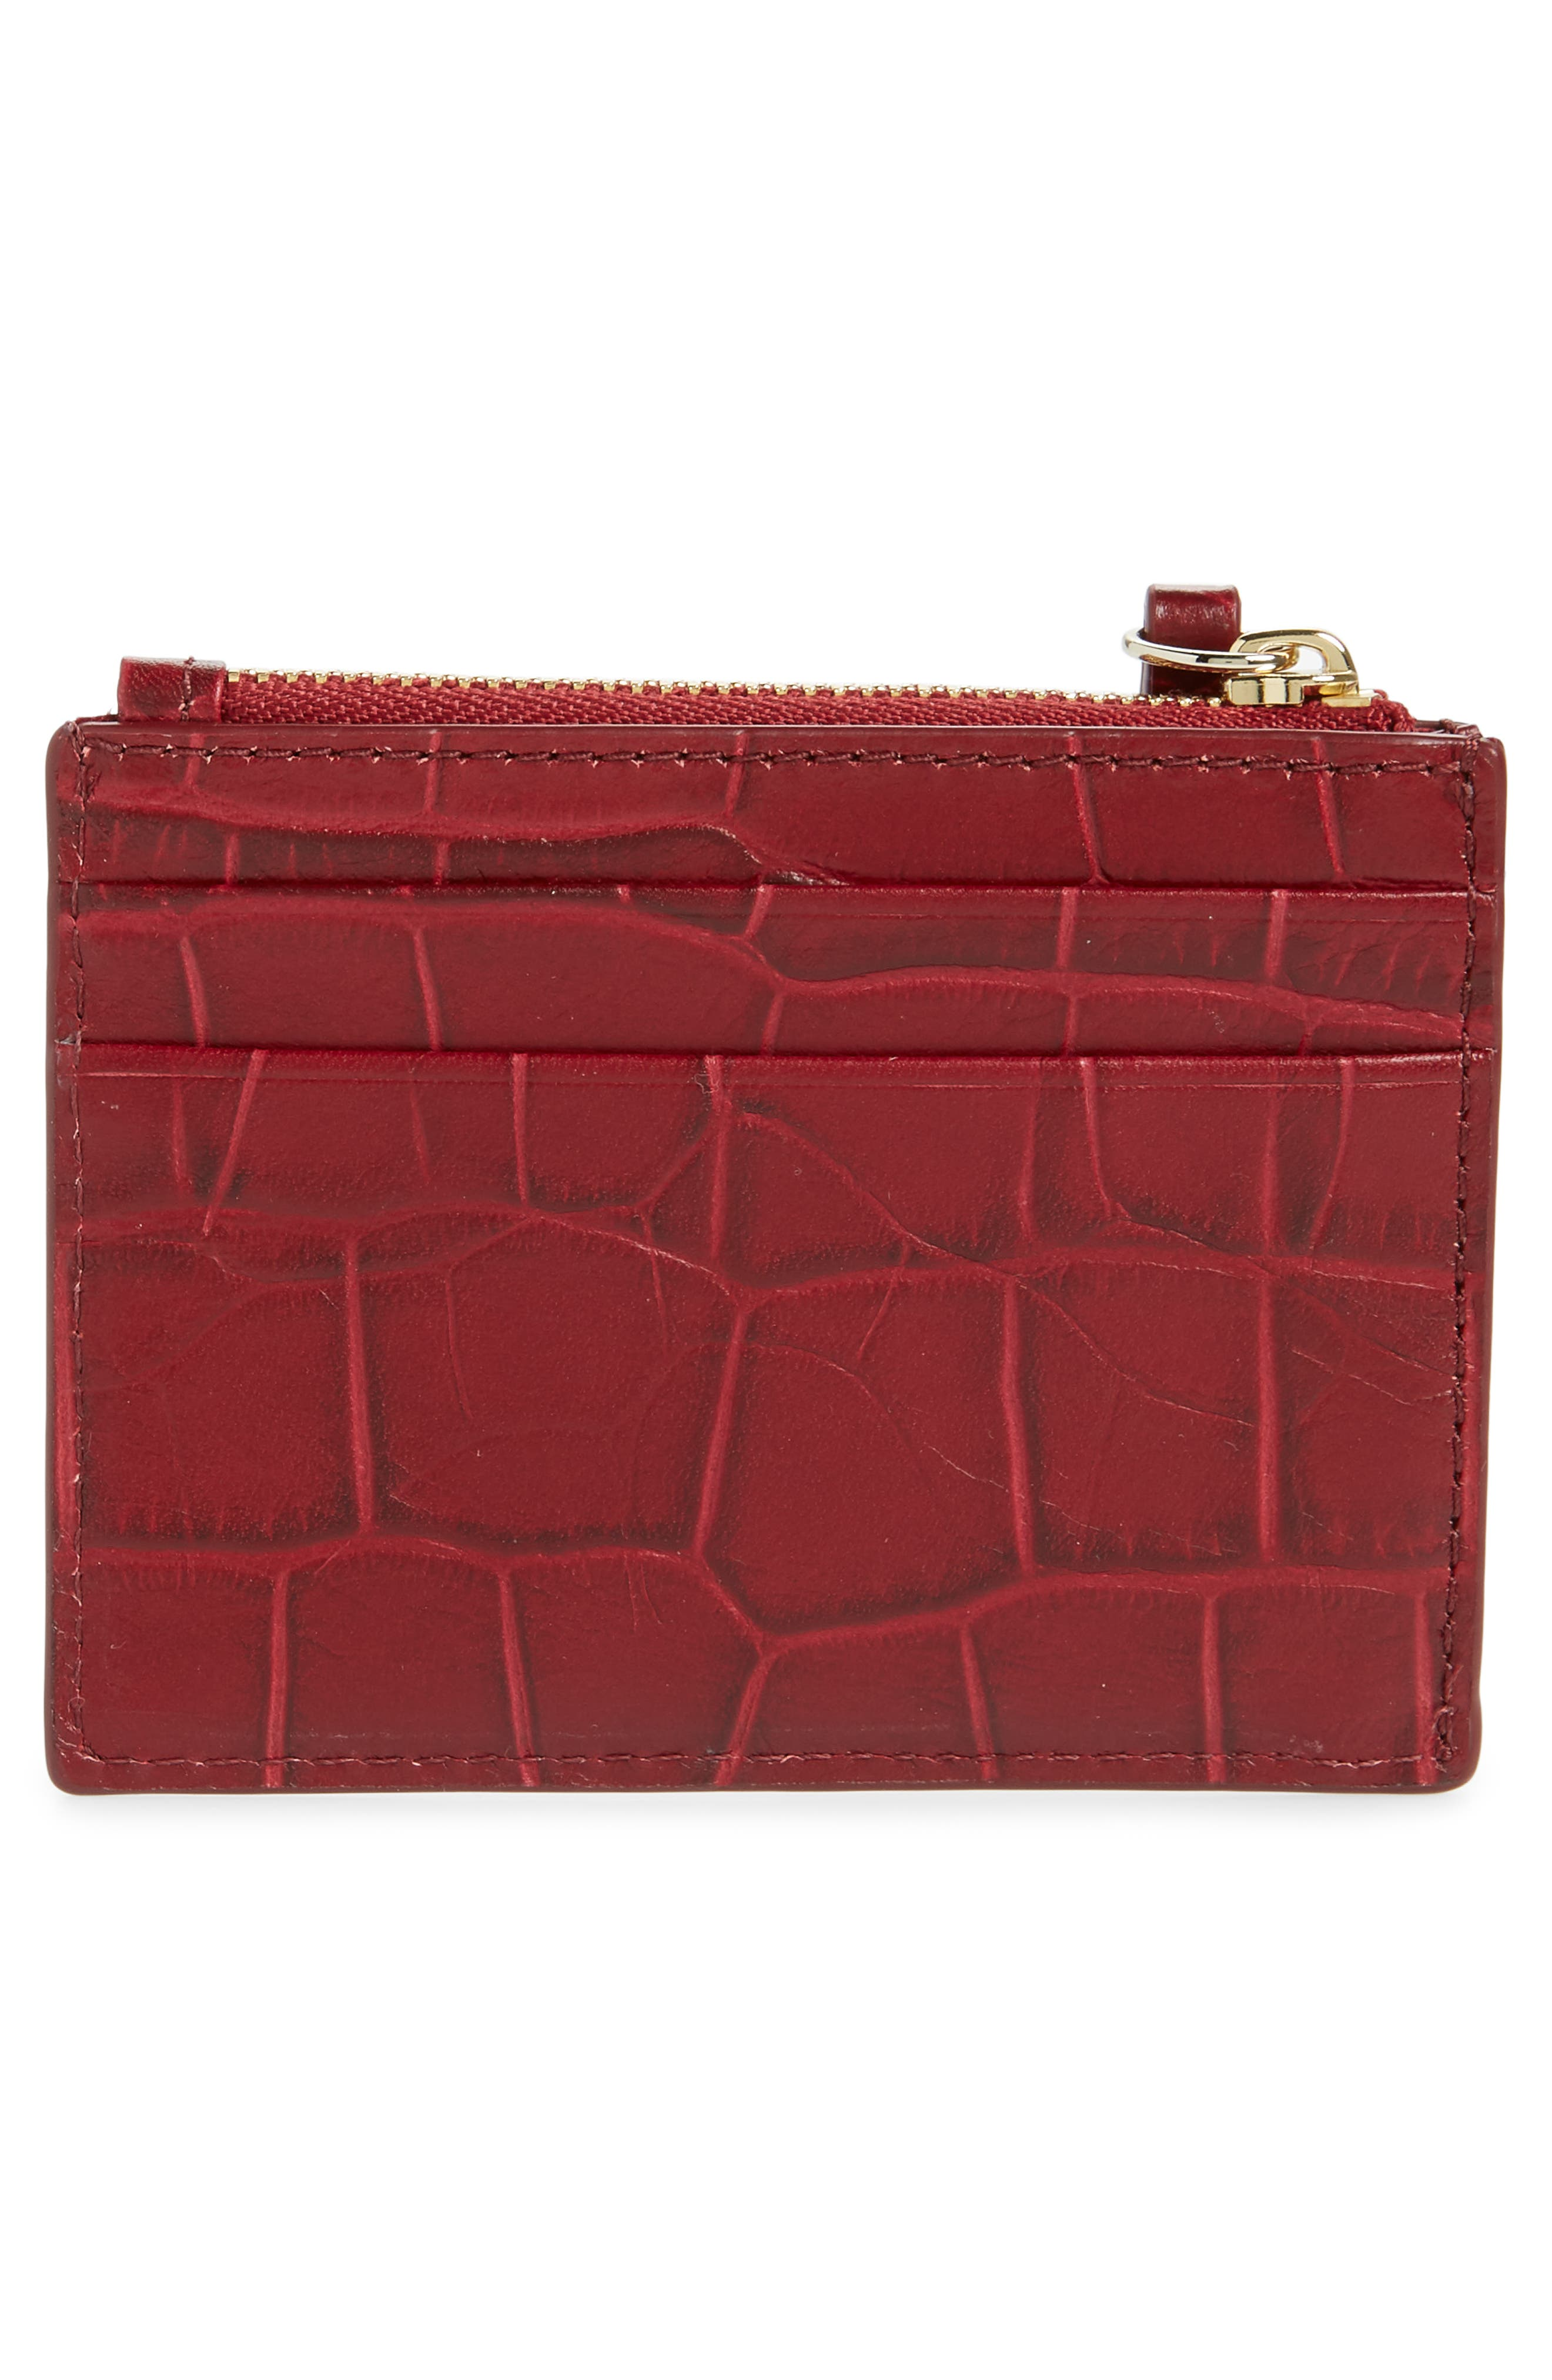 KATE SPADE NEW YORK,                             murray street - lalena croc embossed leather card case,                             Alternate thumbnail 2, color,                             600